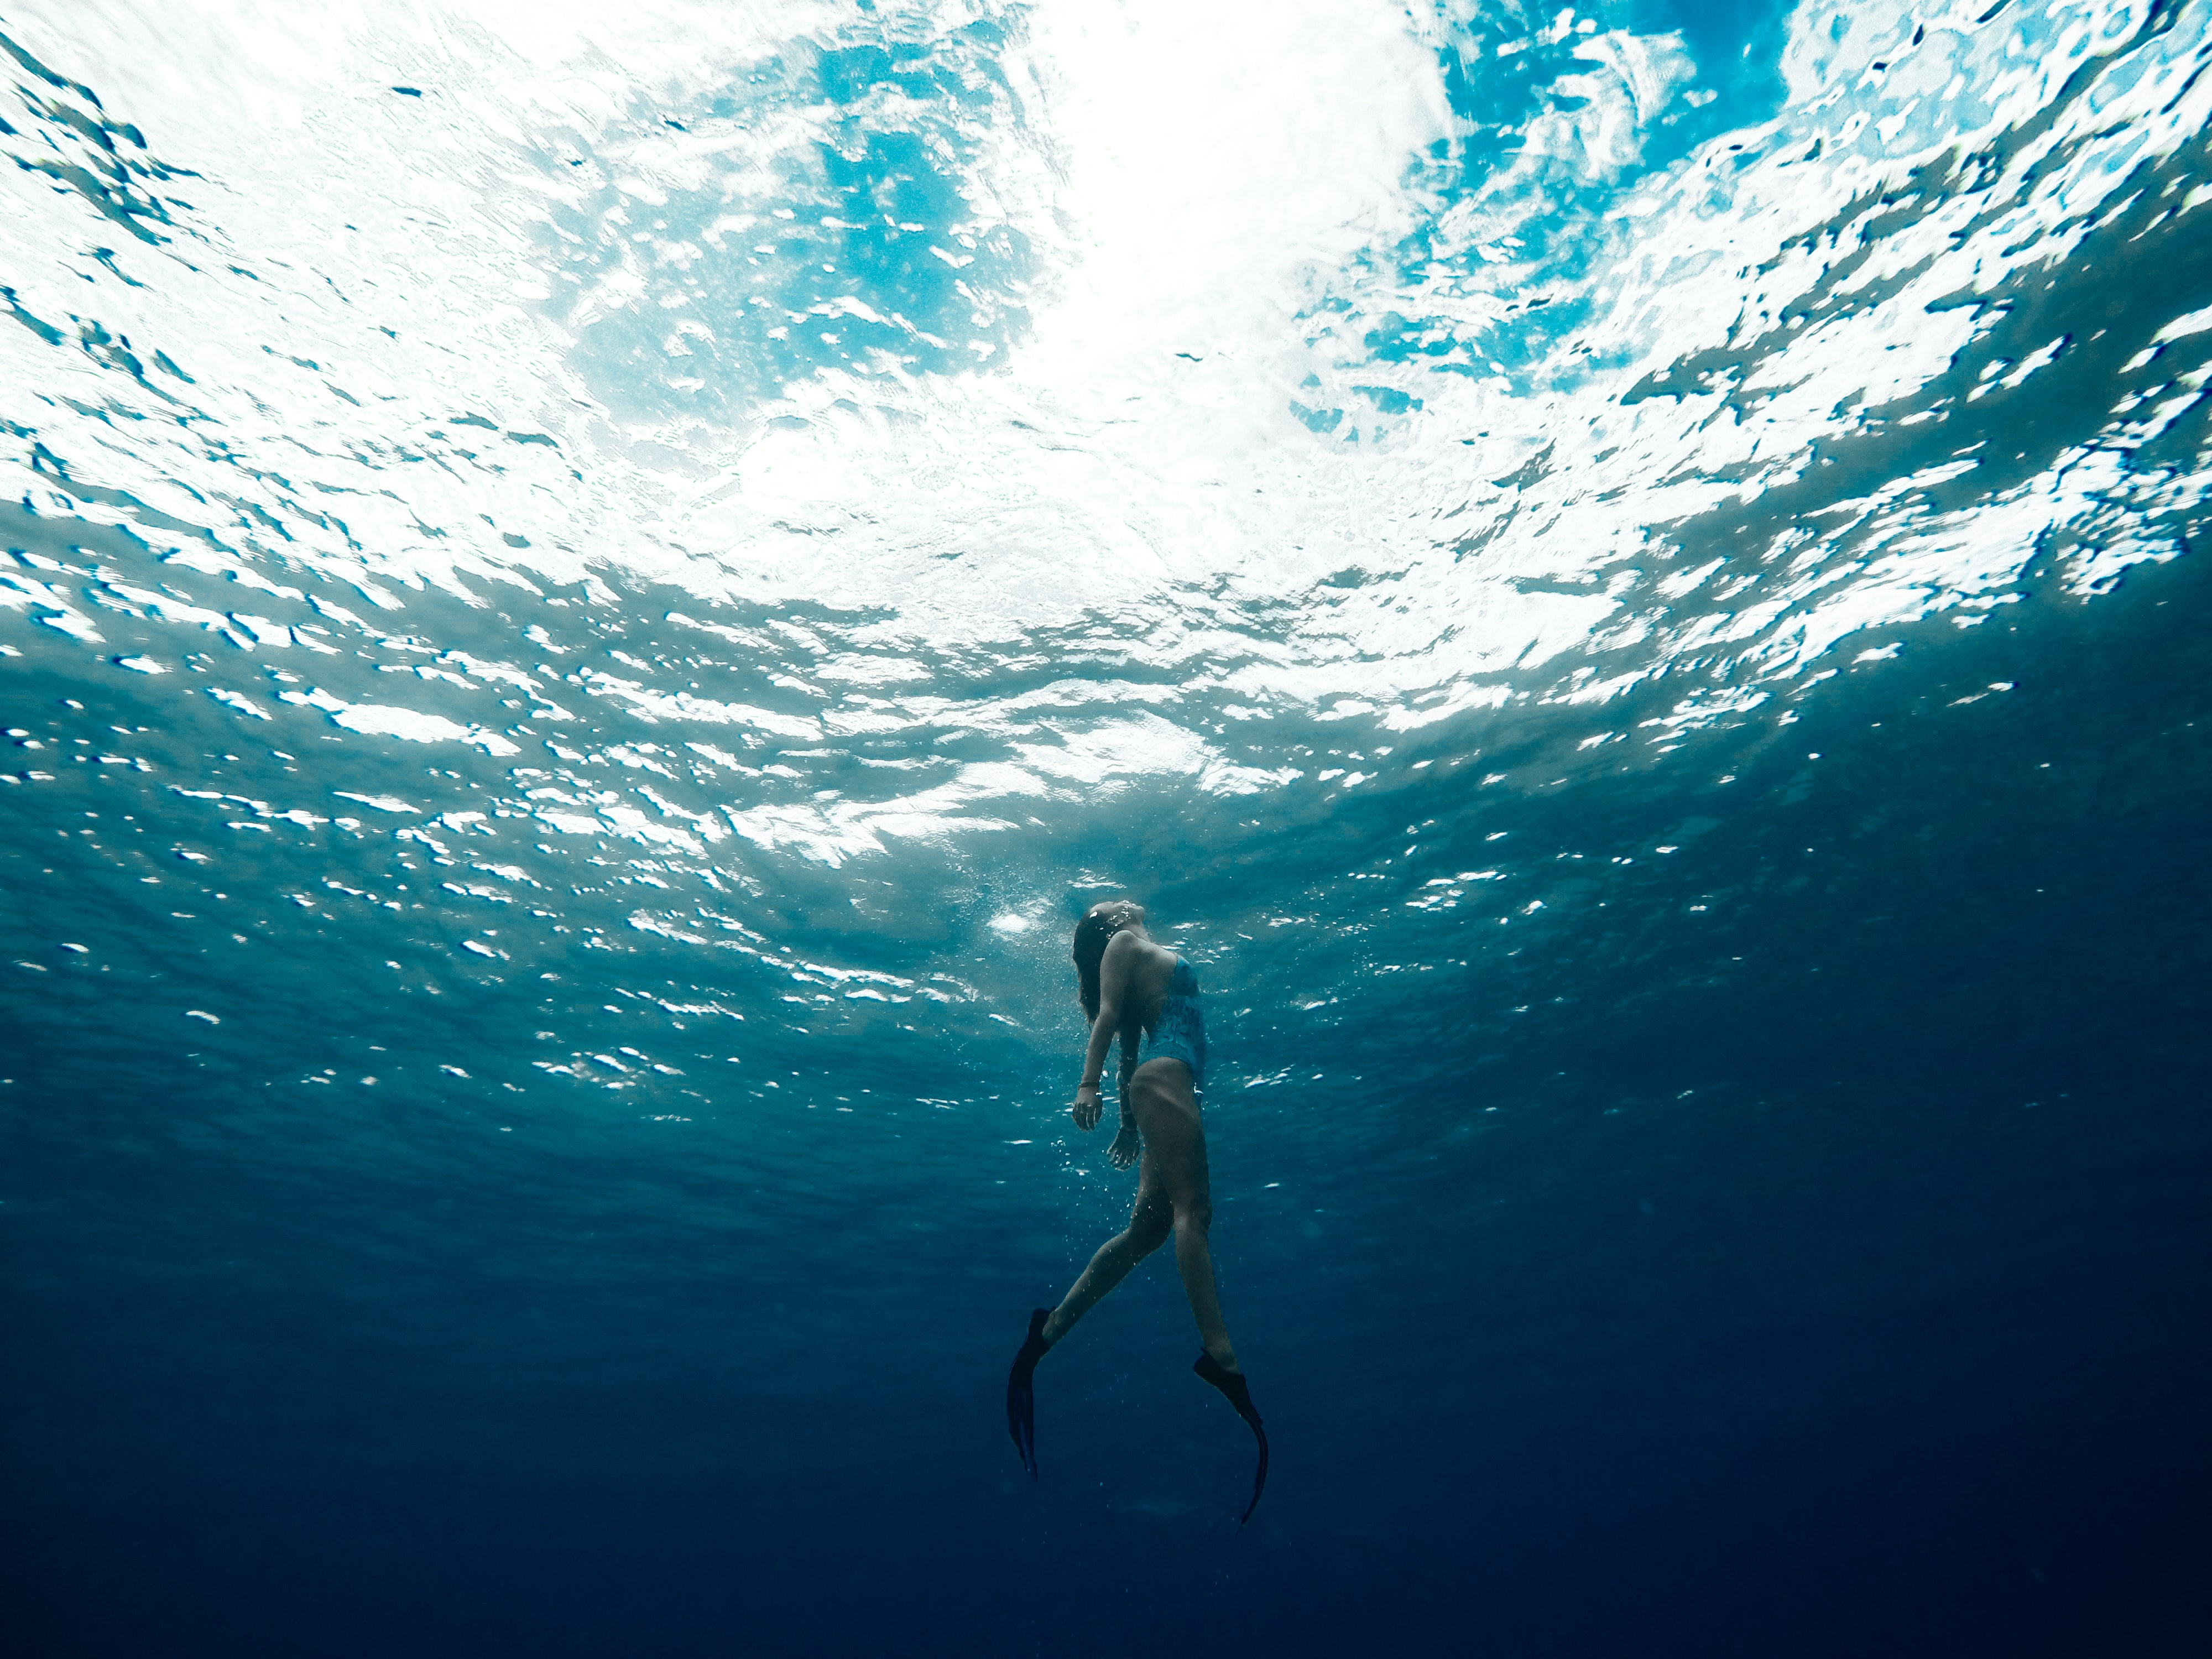 A woman in swim fins swimming towards the surface of the water